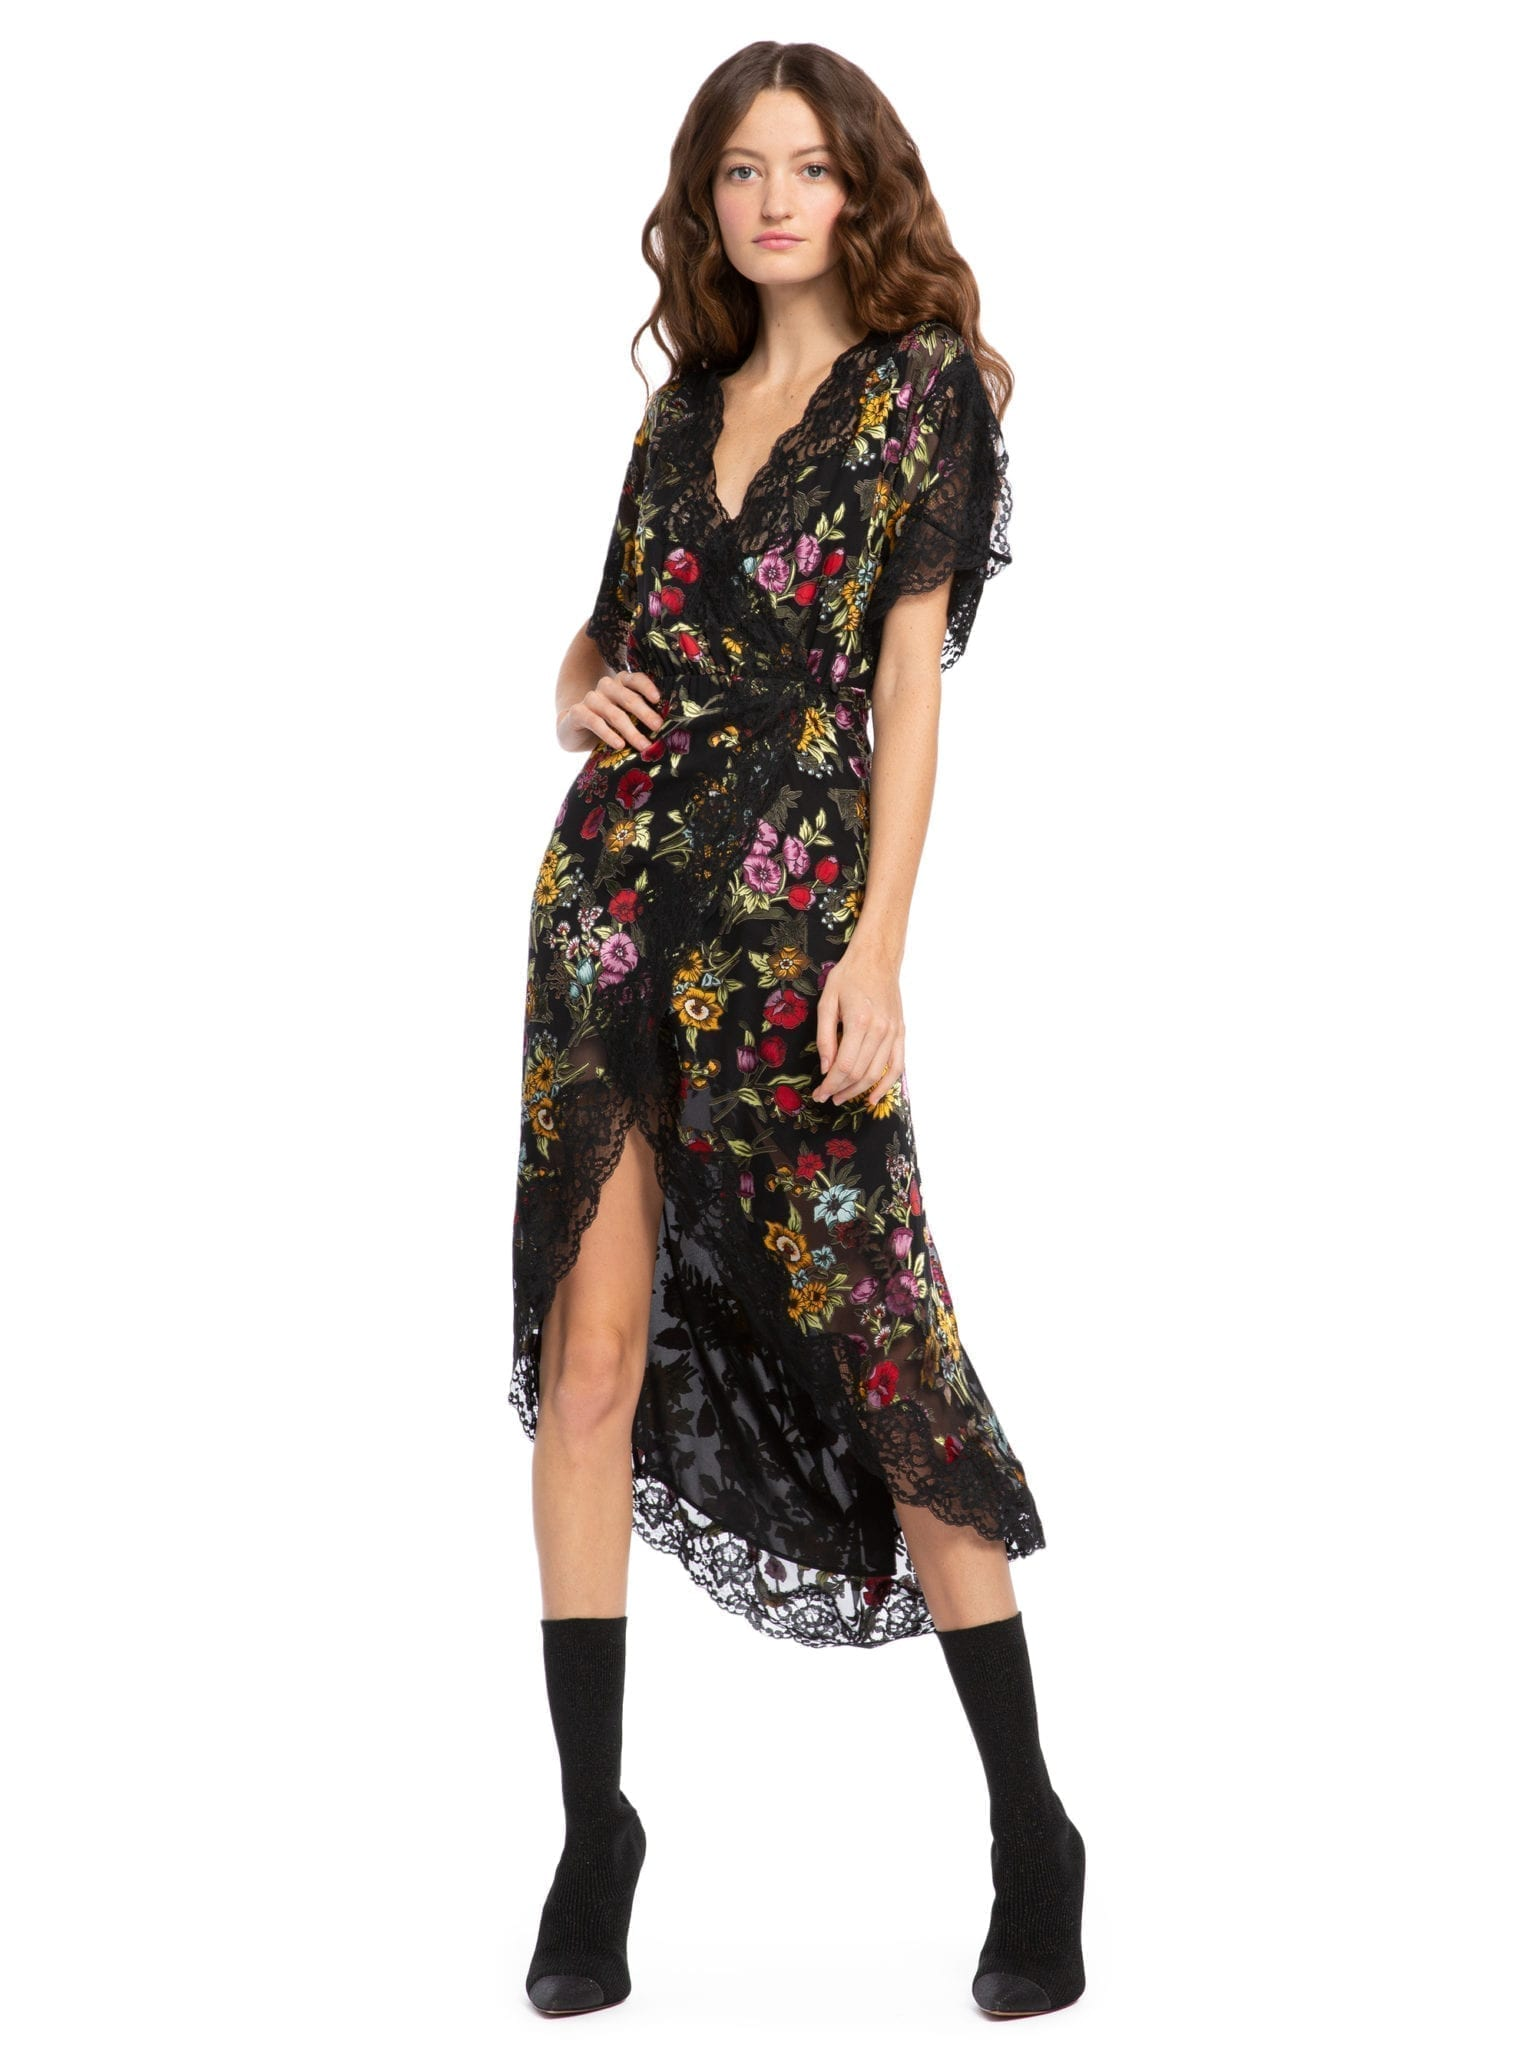 Alice + Olivia Adele Midi Wrap Floral Black Dress